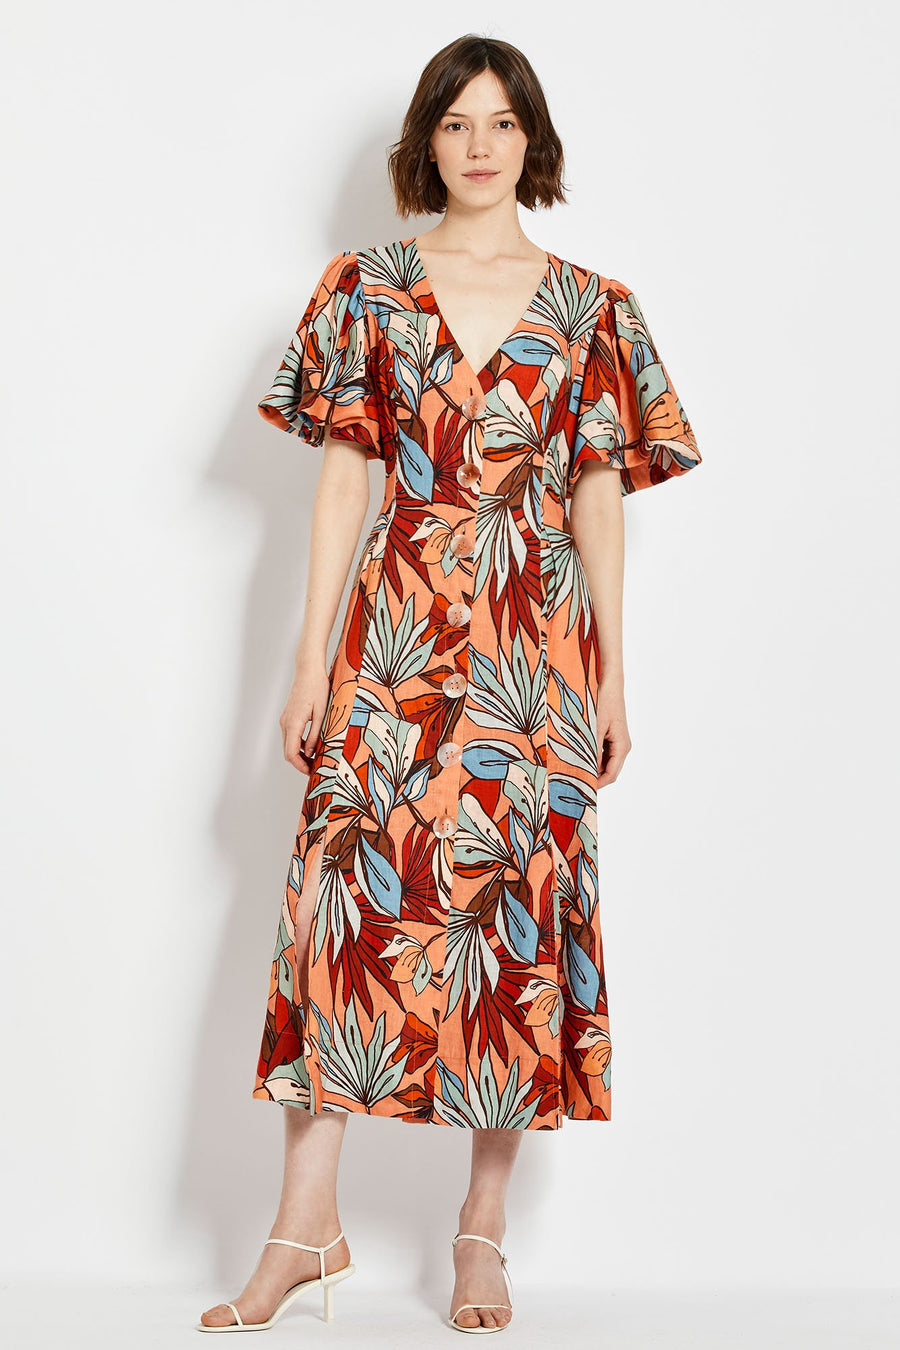 Troy Dress - Tarama Deco Floral